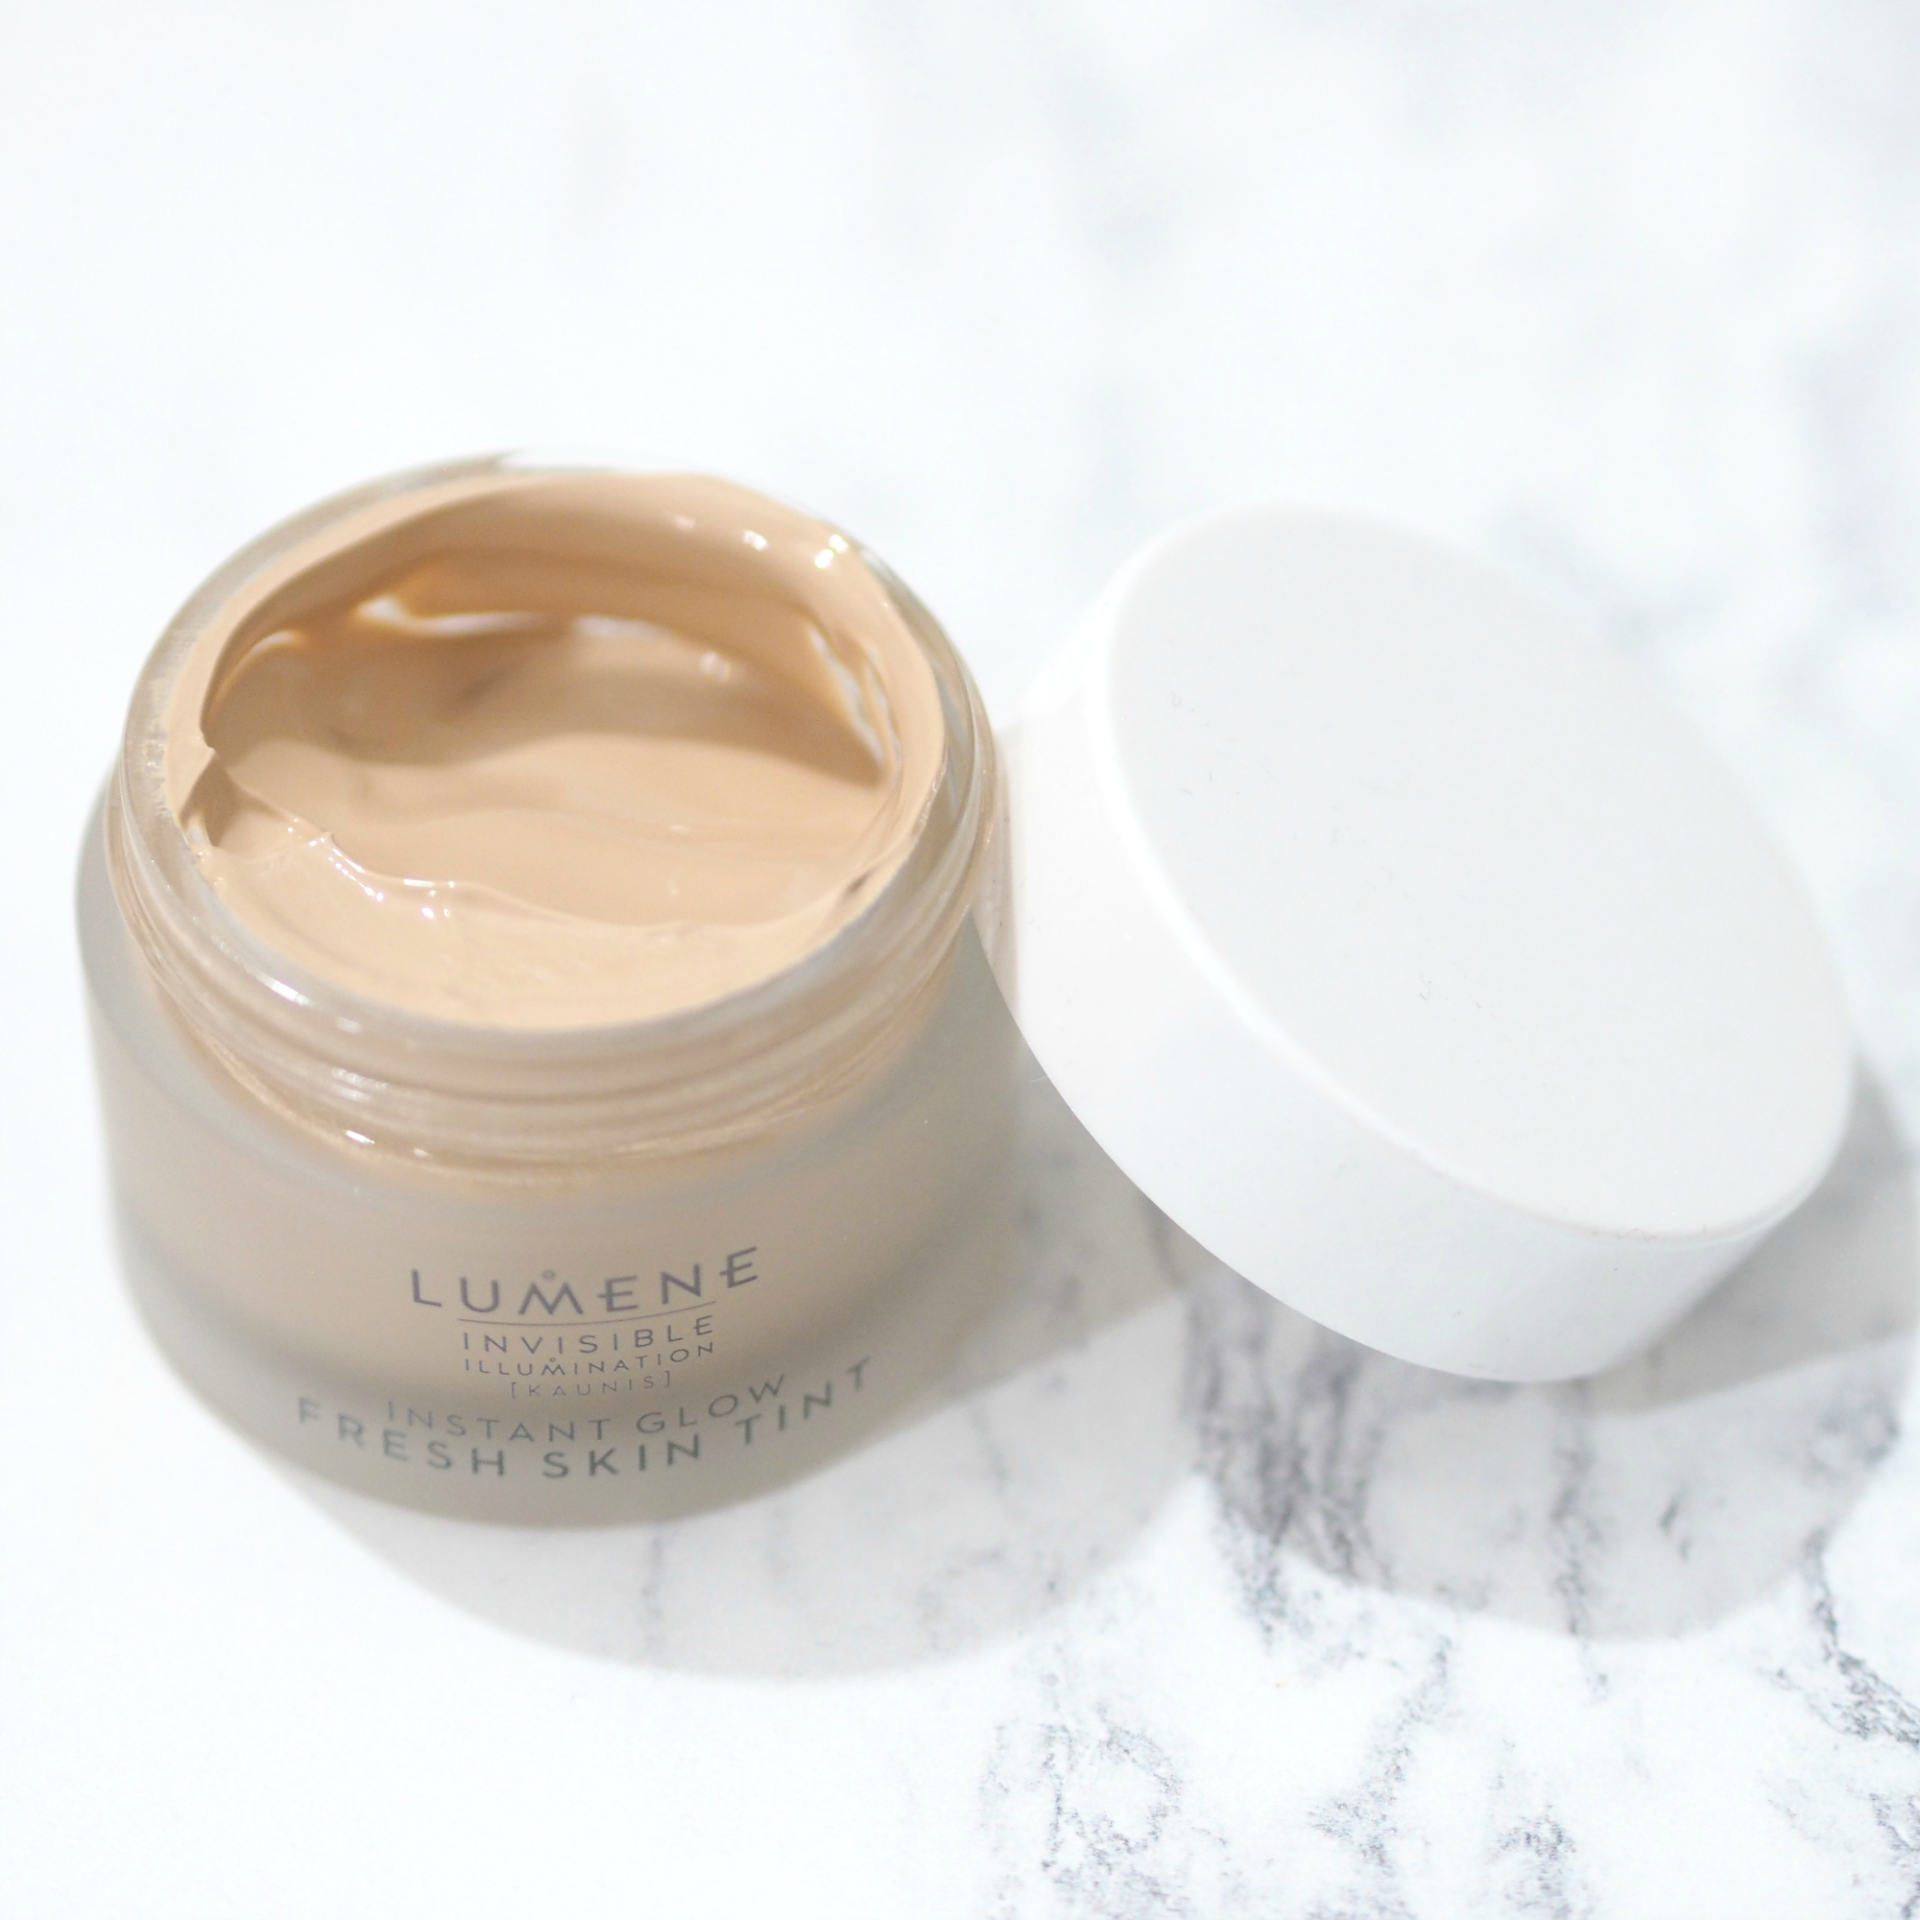 Lumene Invisible Illumination Instant Glow Fresh Skin Tint in Universal Medium Review and Swatches